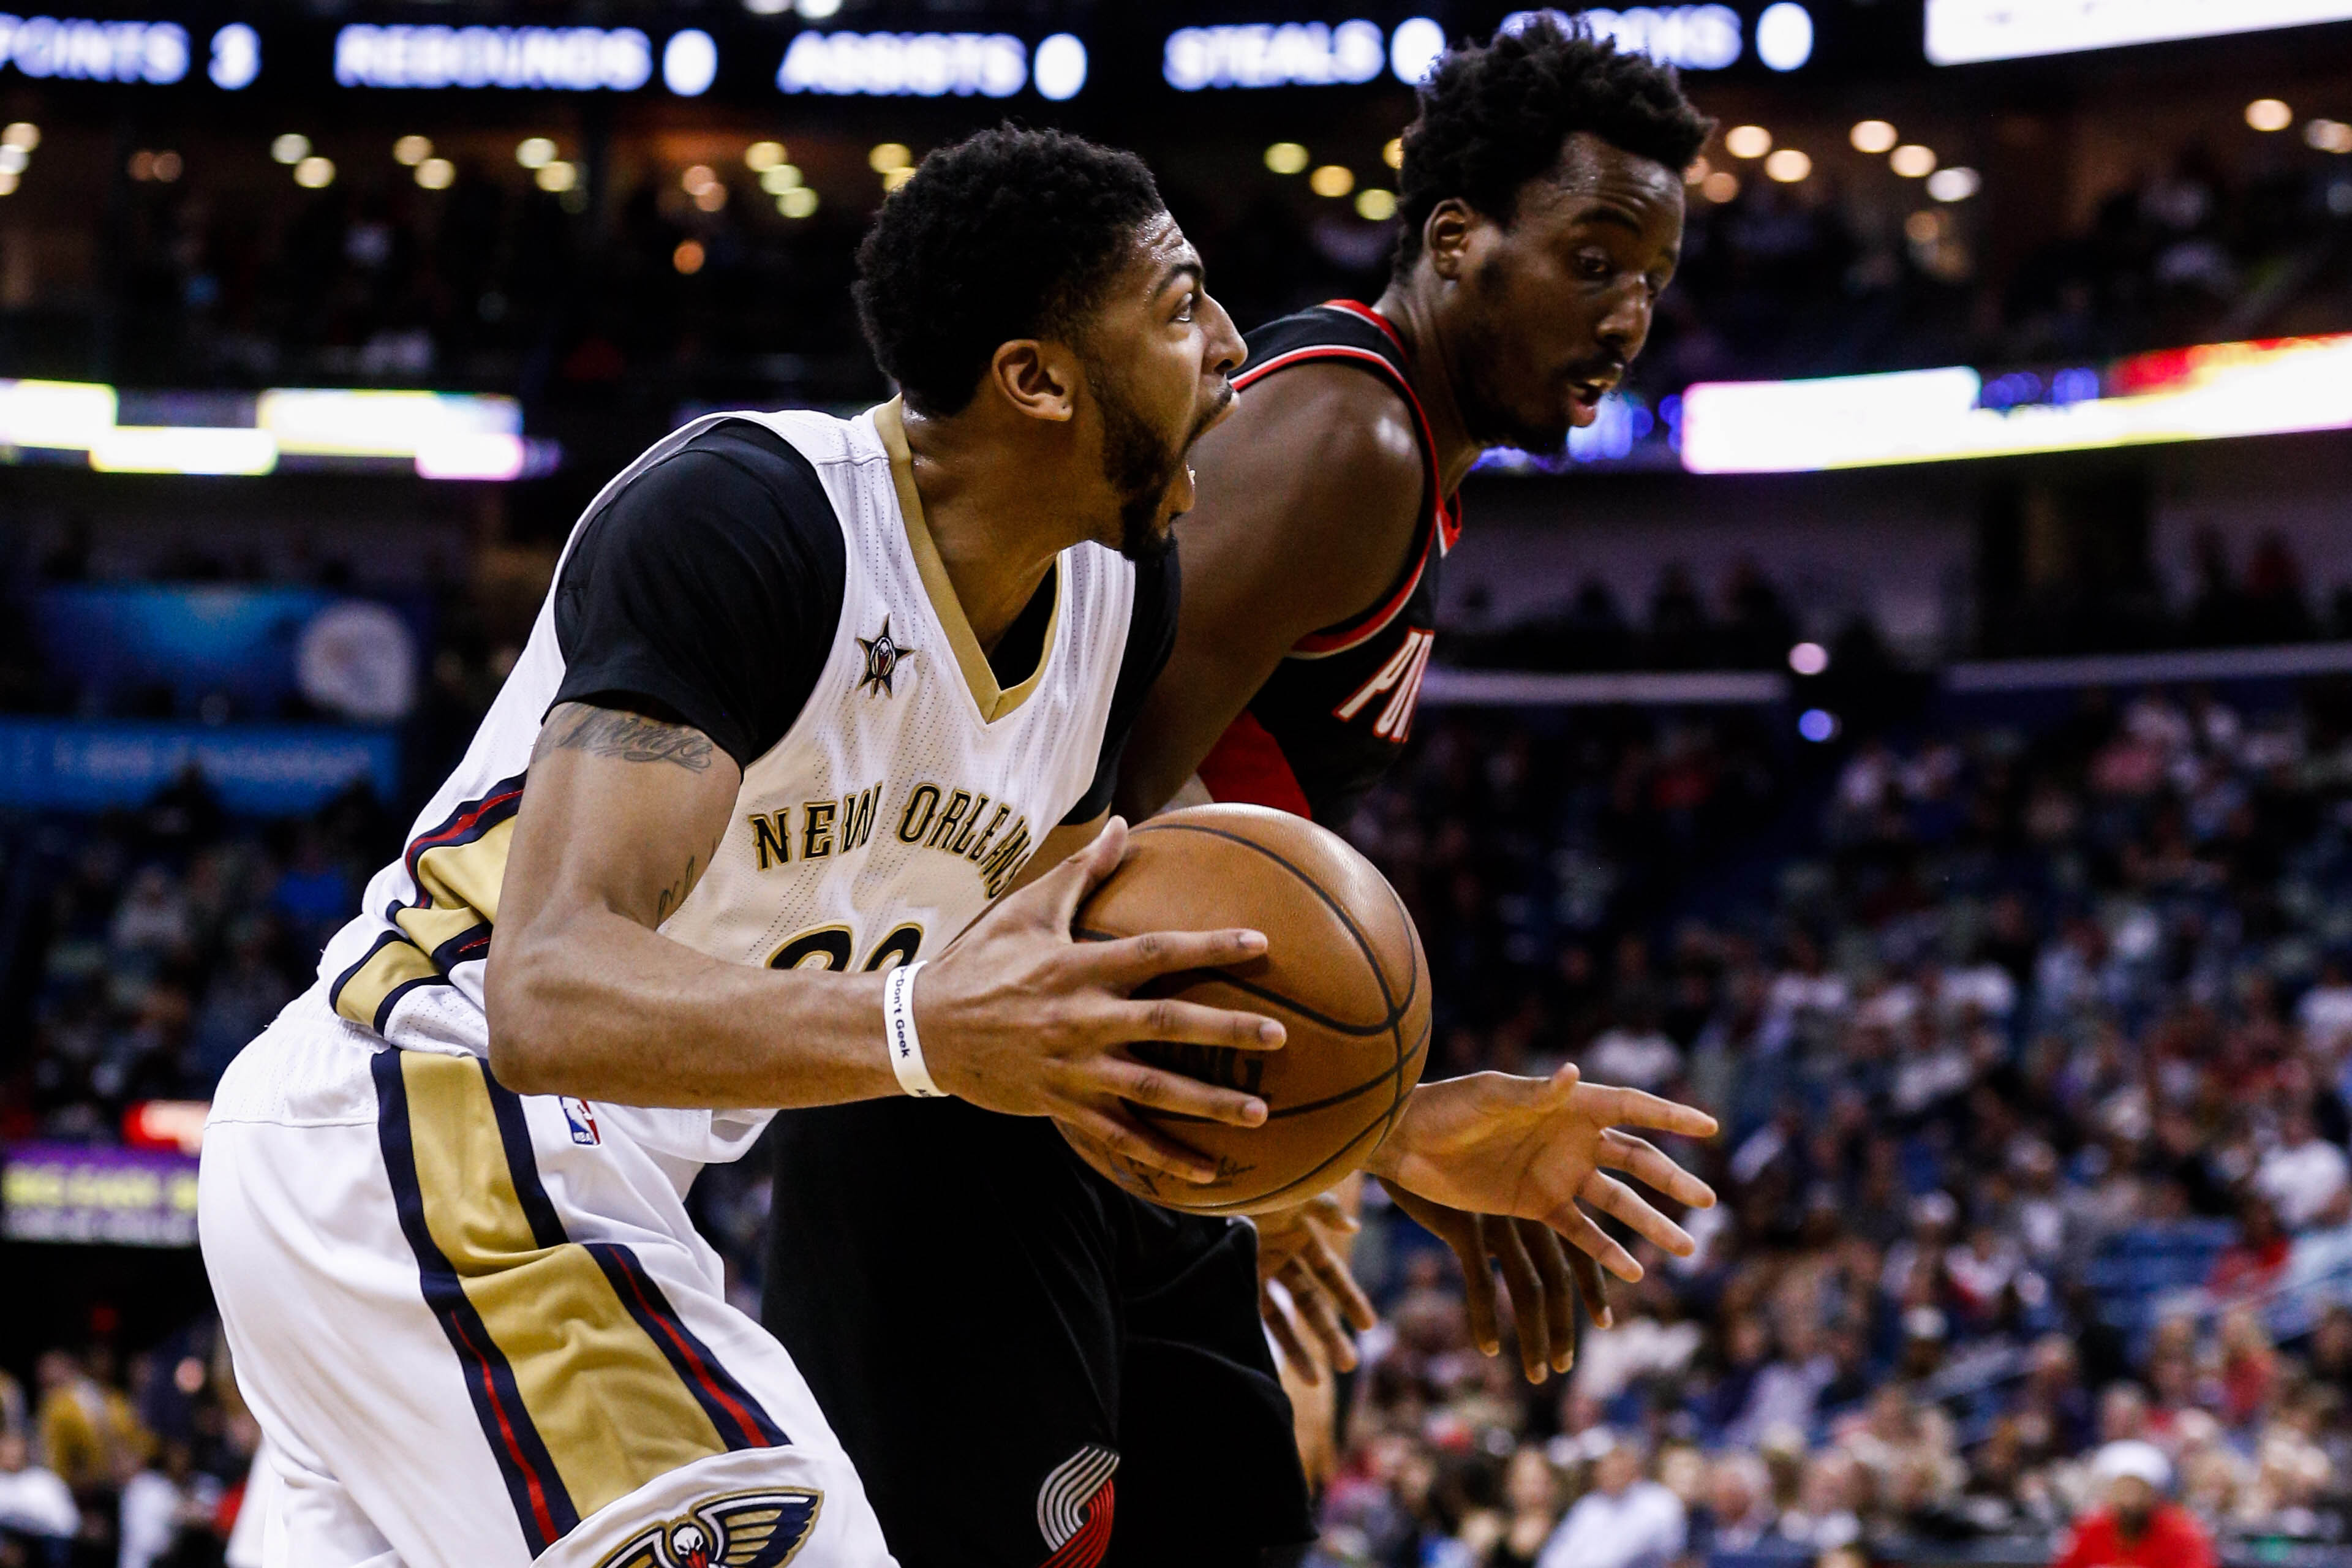 Cousins and Davis Lead Pelicans to Big Win over Portland